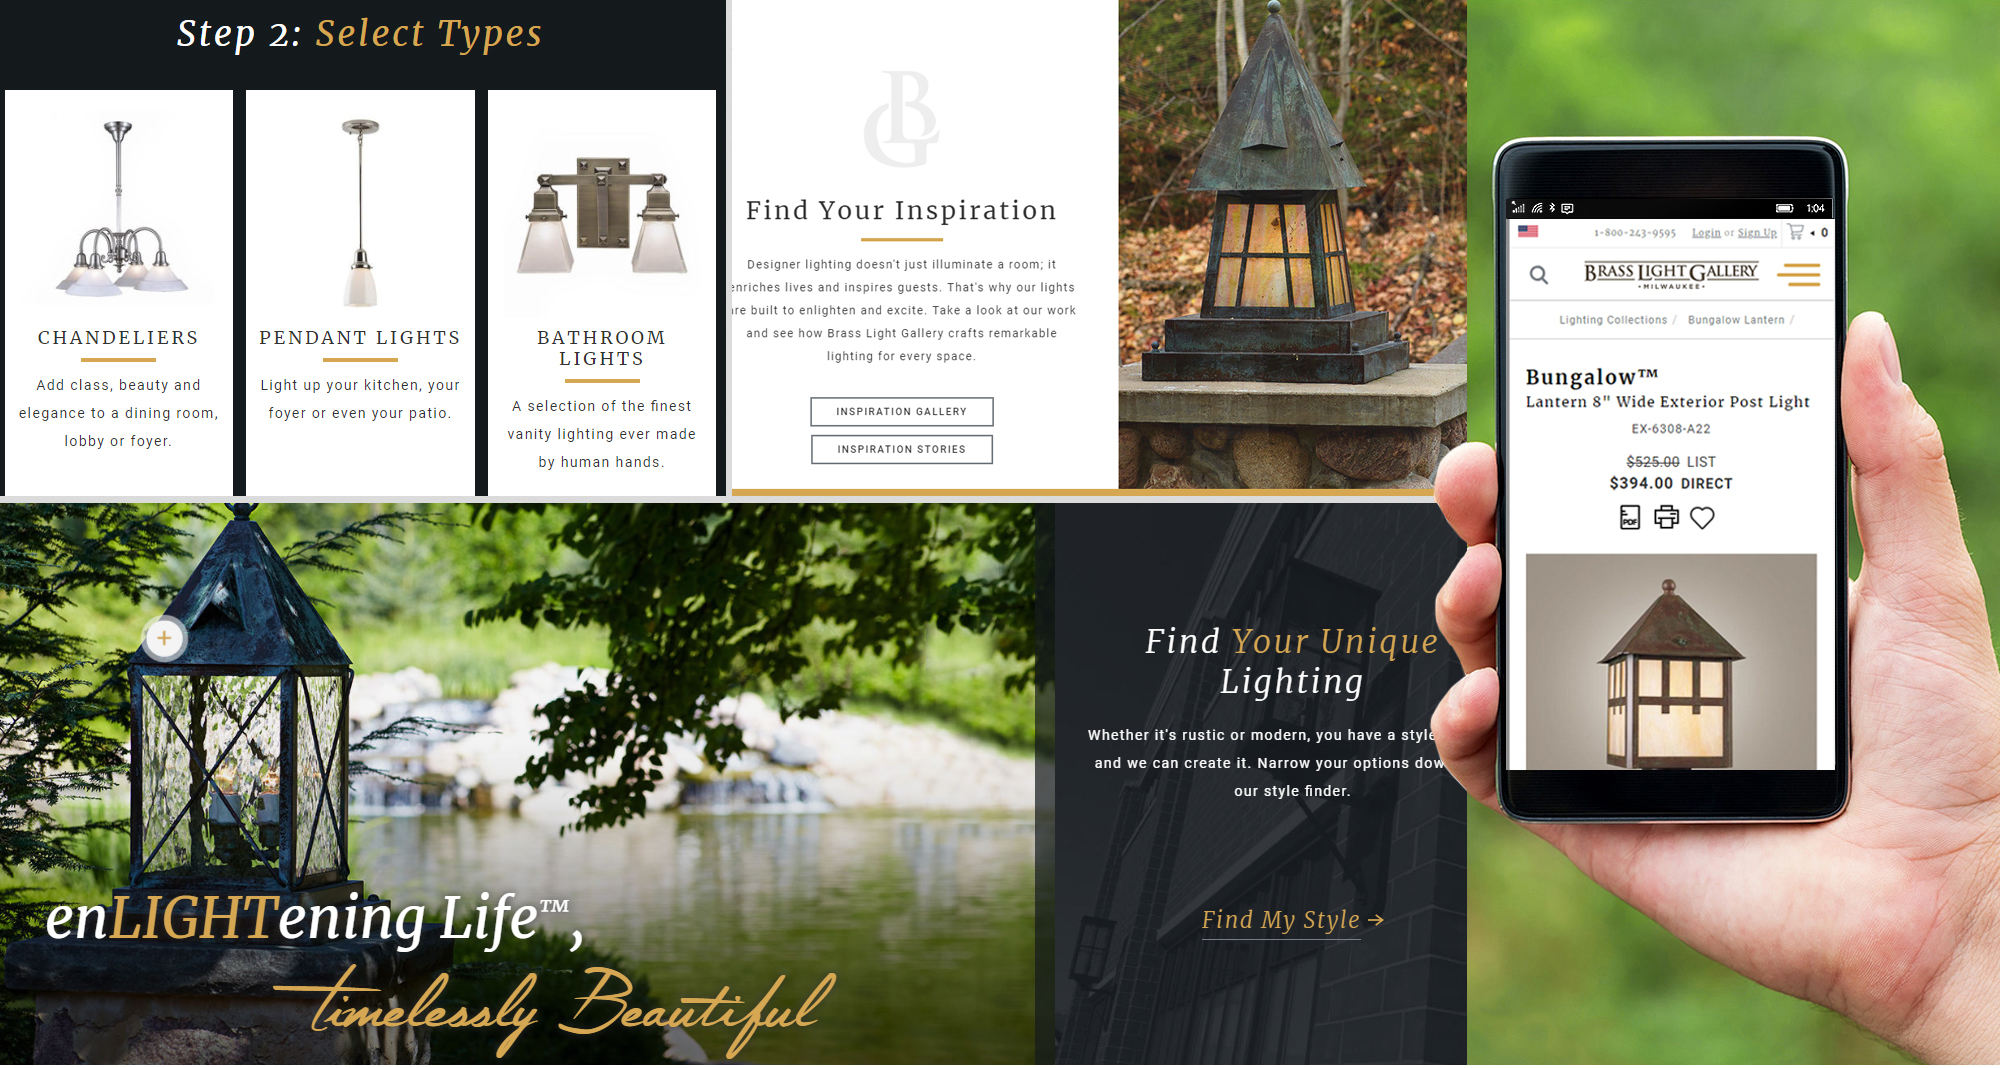 Milwaukee web marketing for Brass Light Gallery